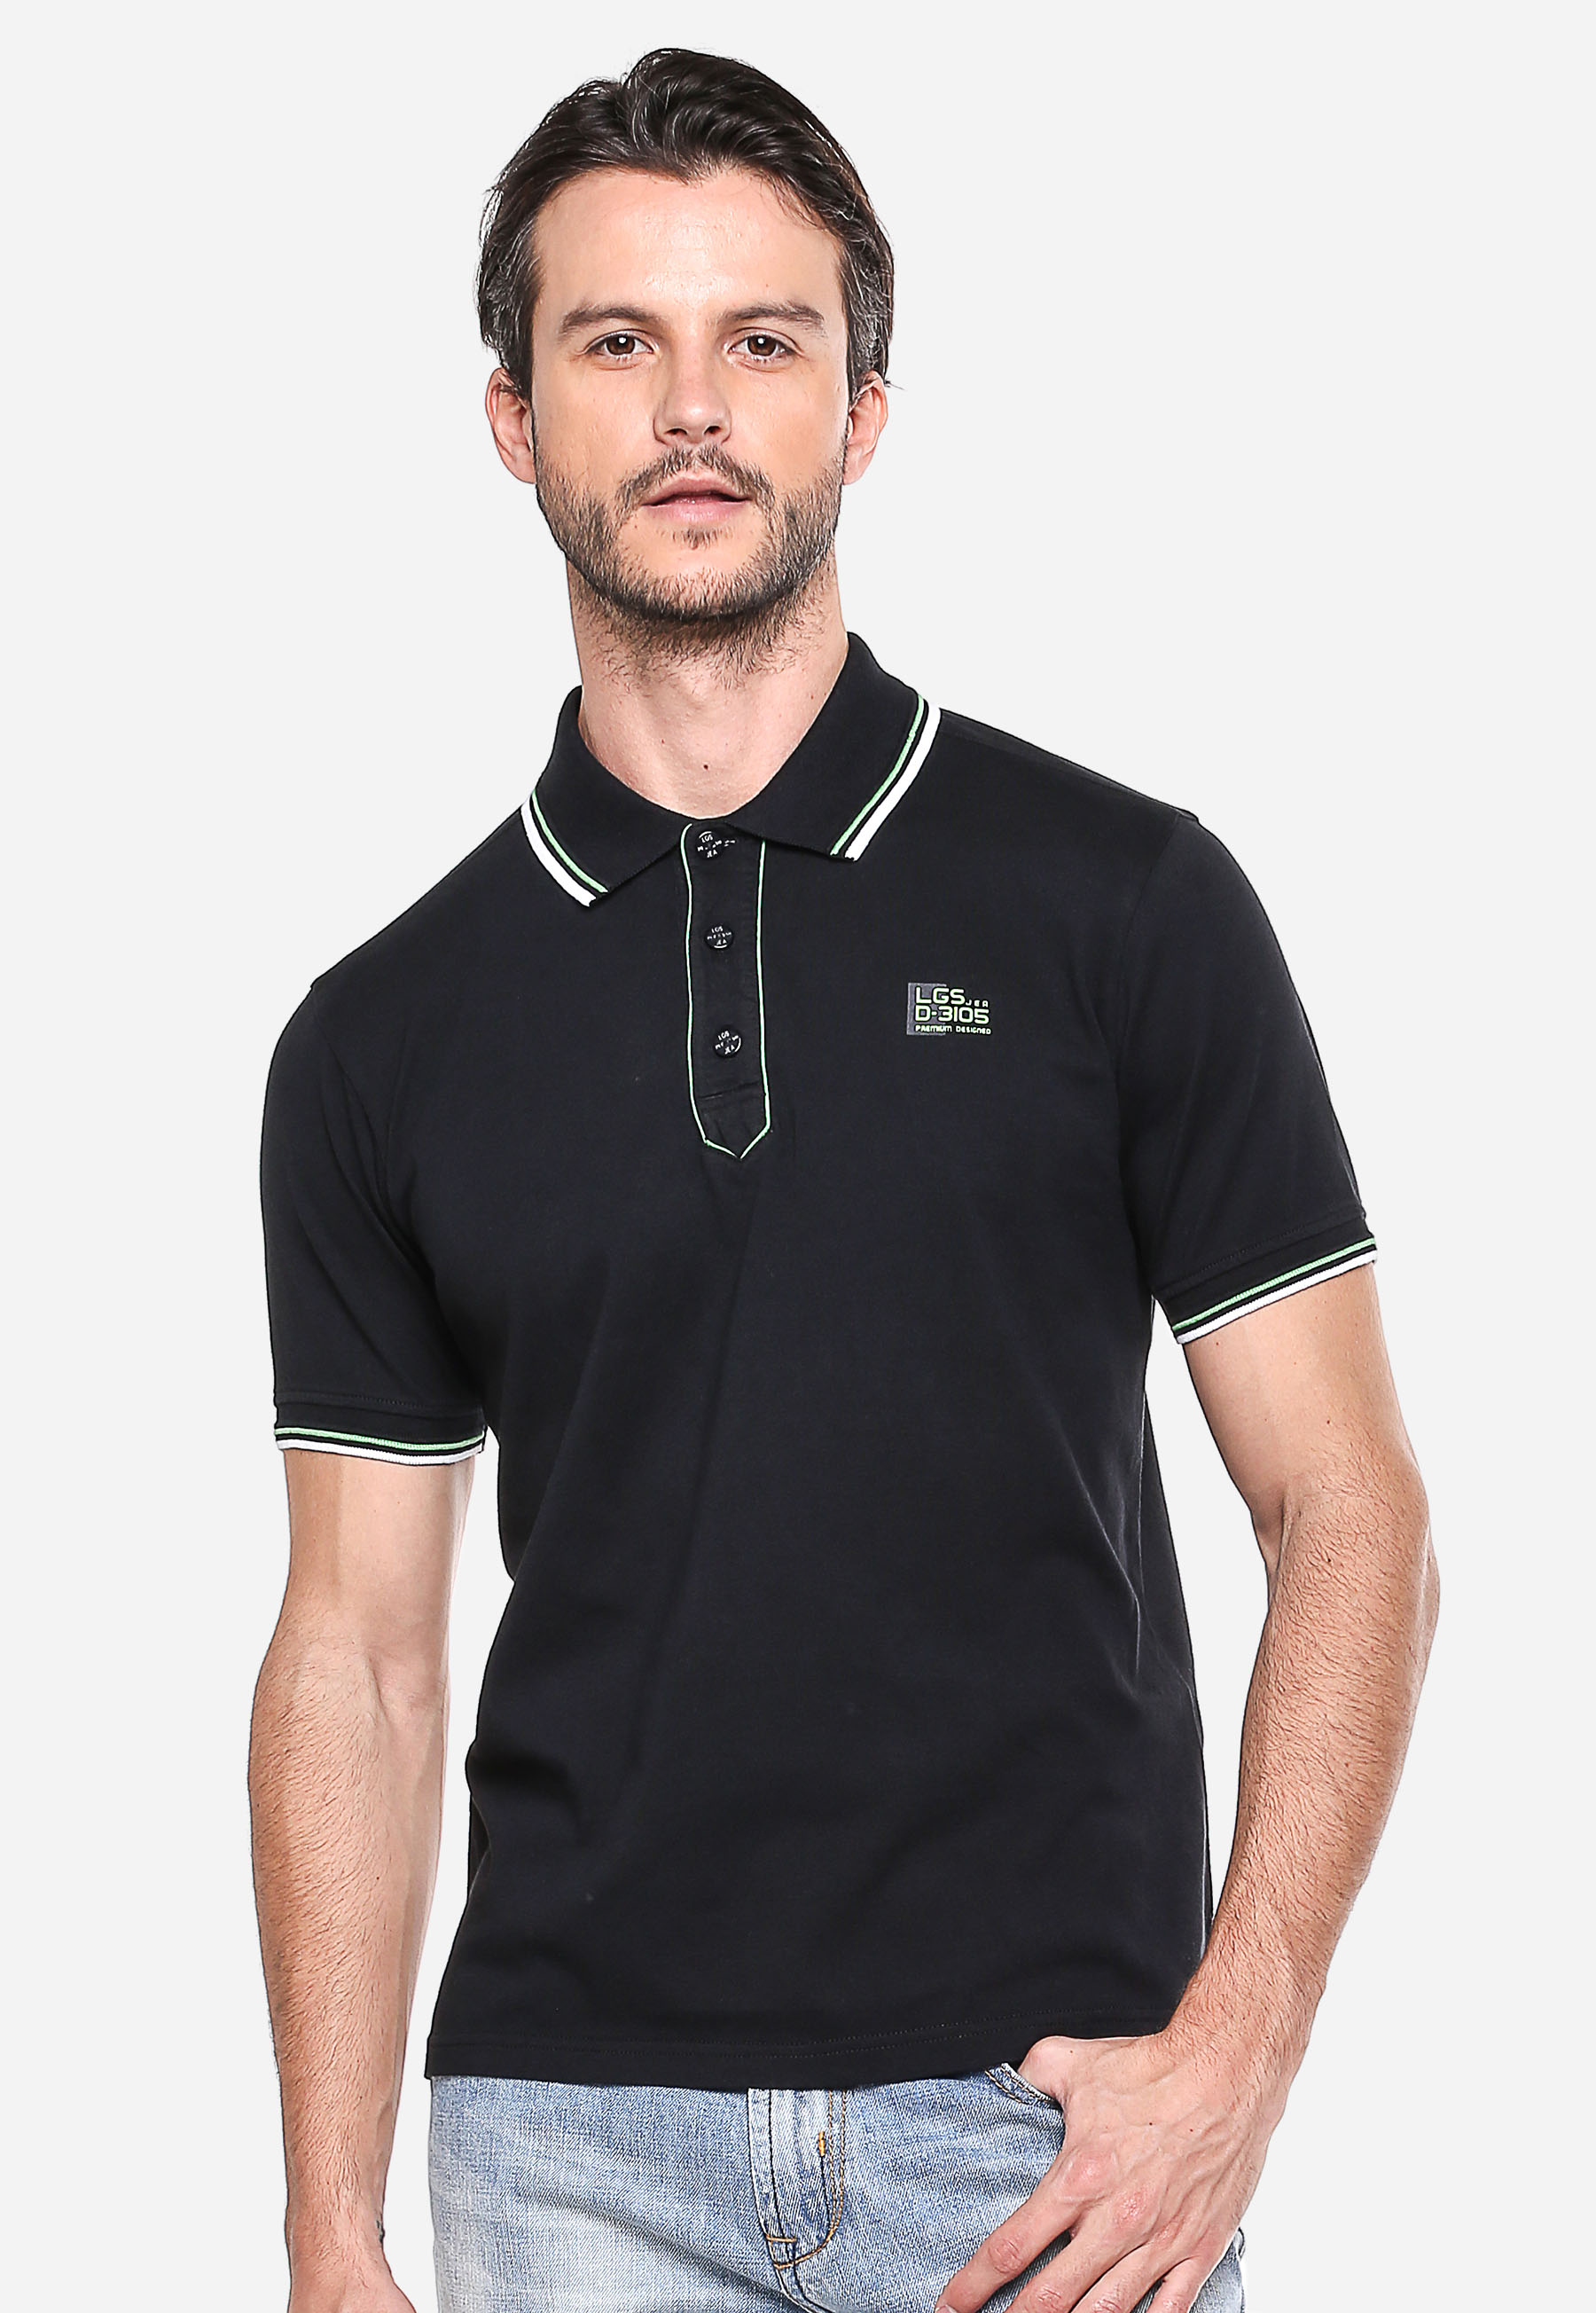 Lgsgeneration Shop Line Johnwin Slim Fit Kemeja Formal Lengan Panjang Abu Kaos Polo Hitam Garis Hijau Putih